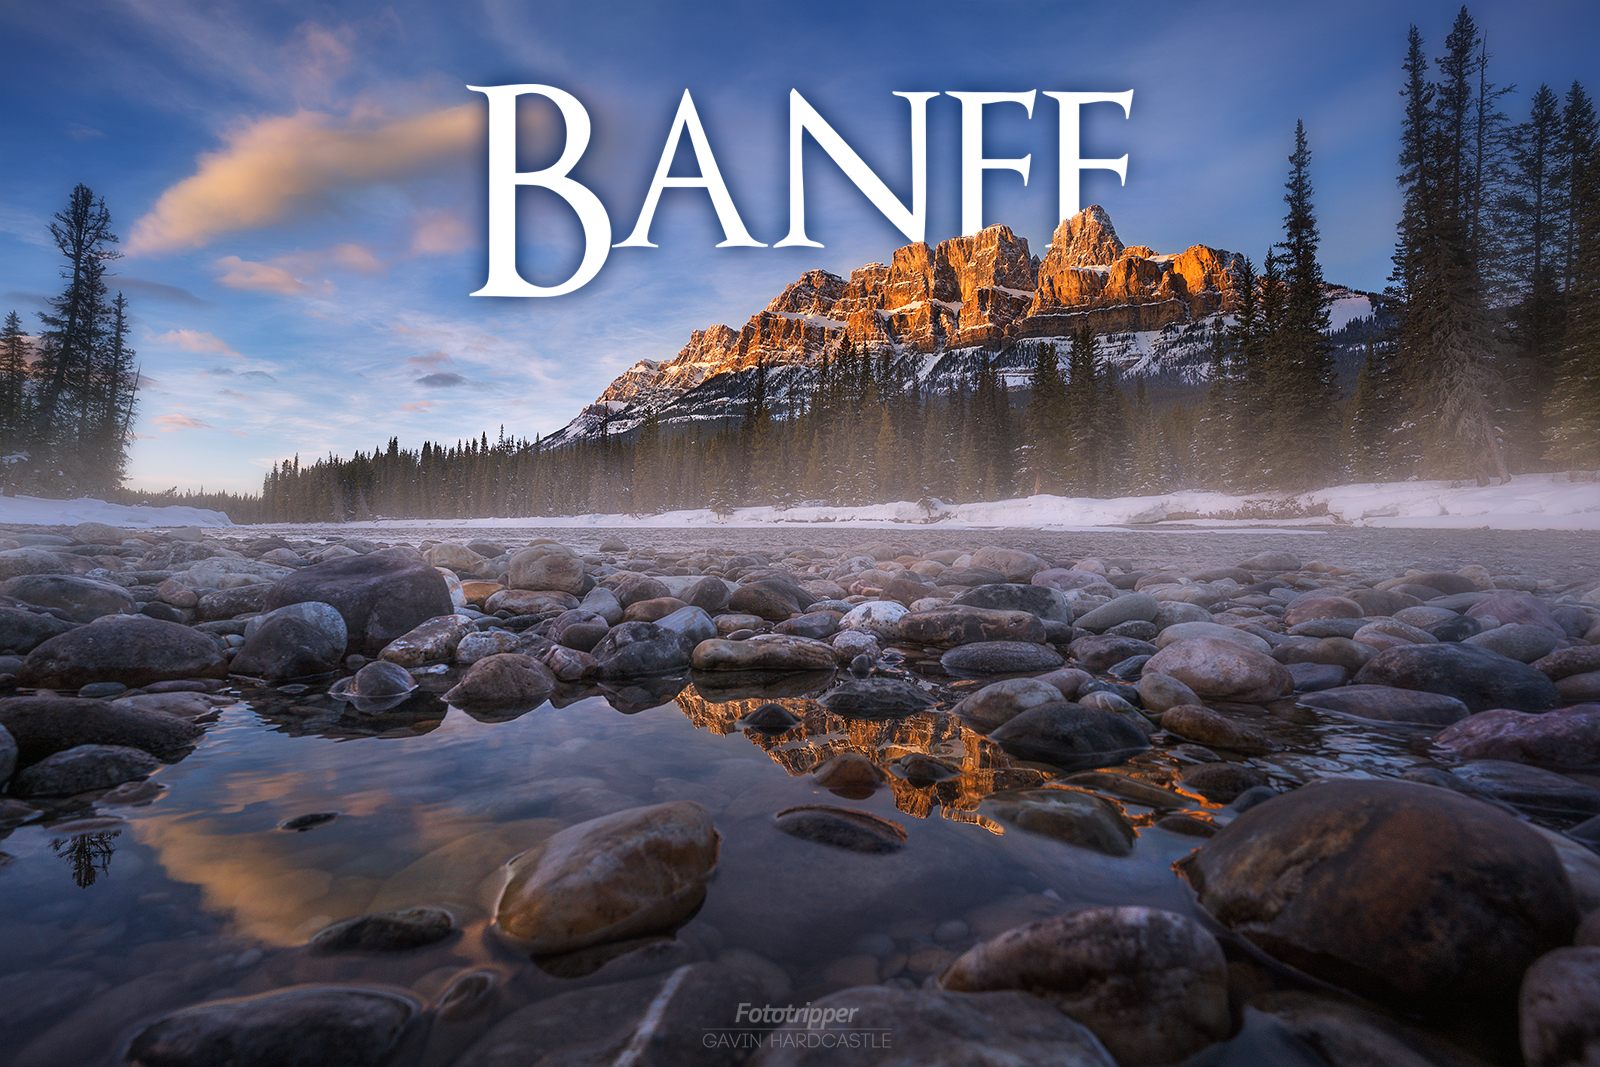 Banff Photography Workshop with Gavin Hardcastle